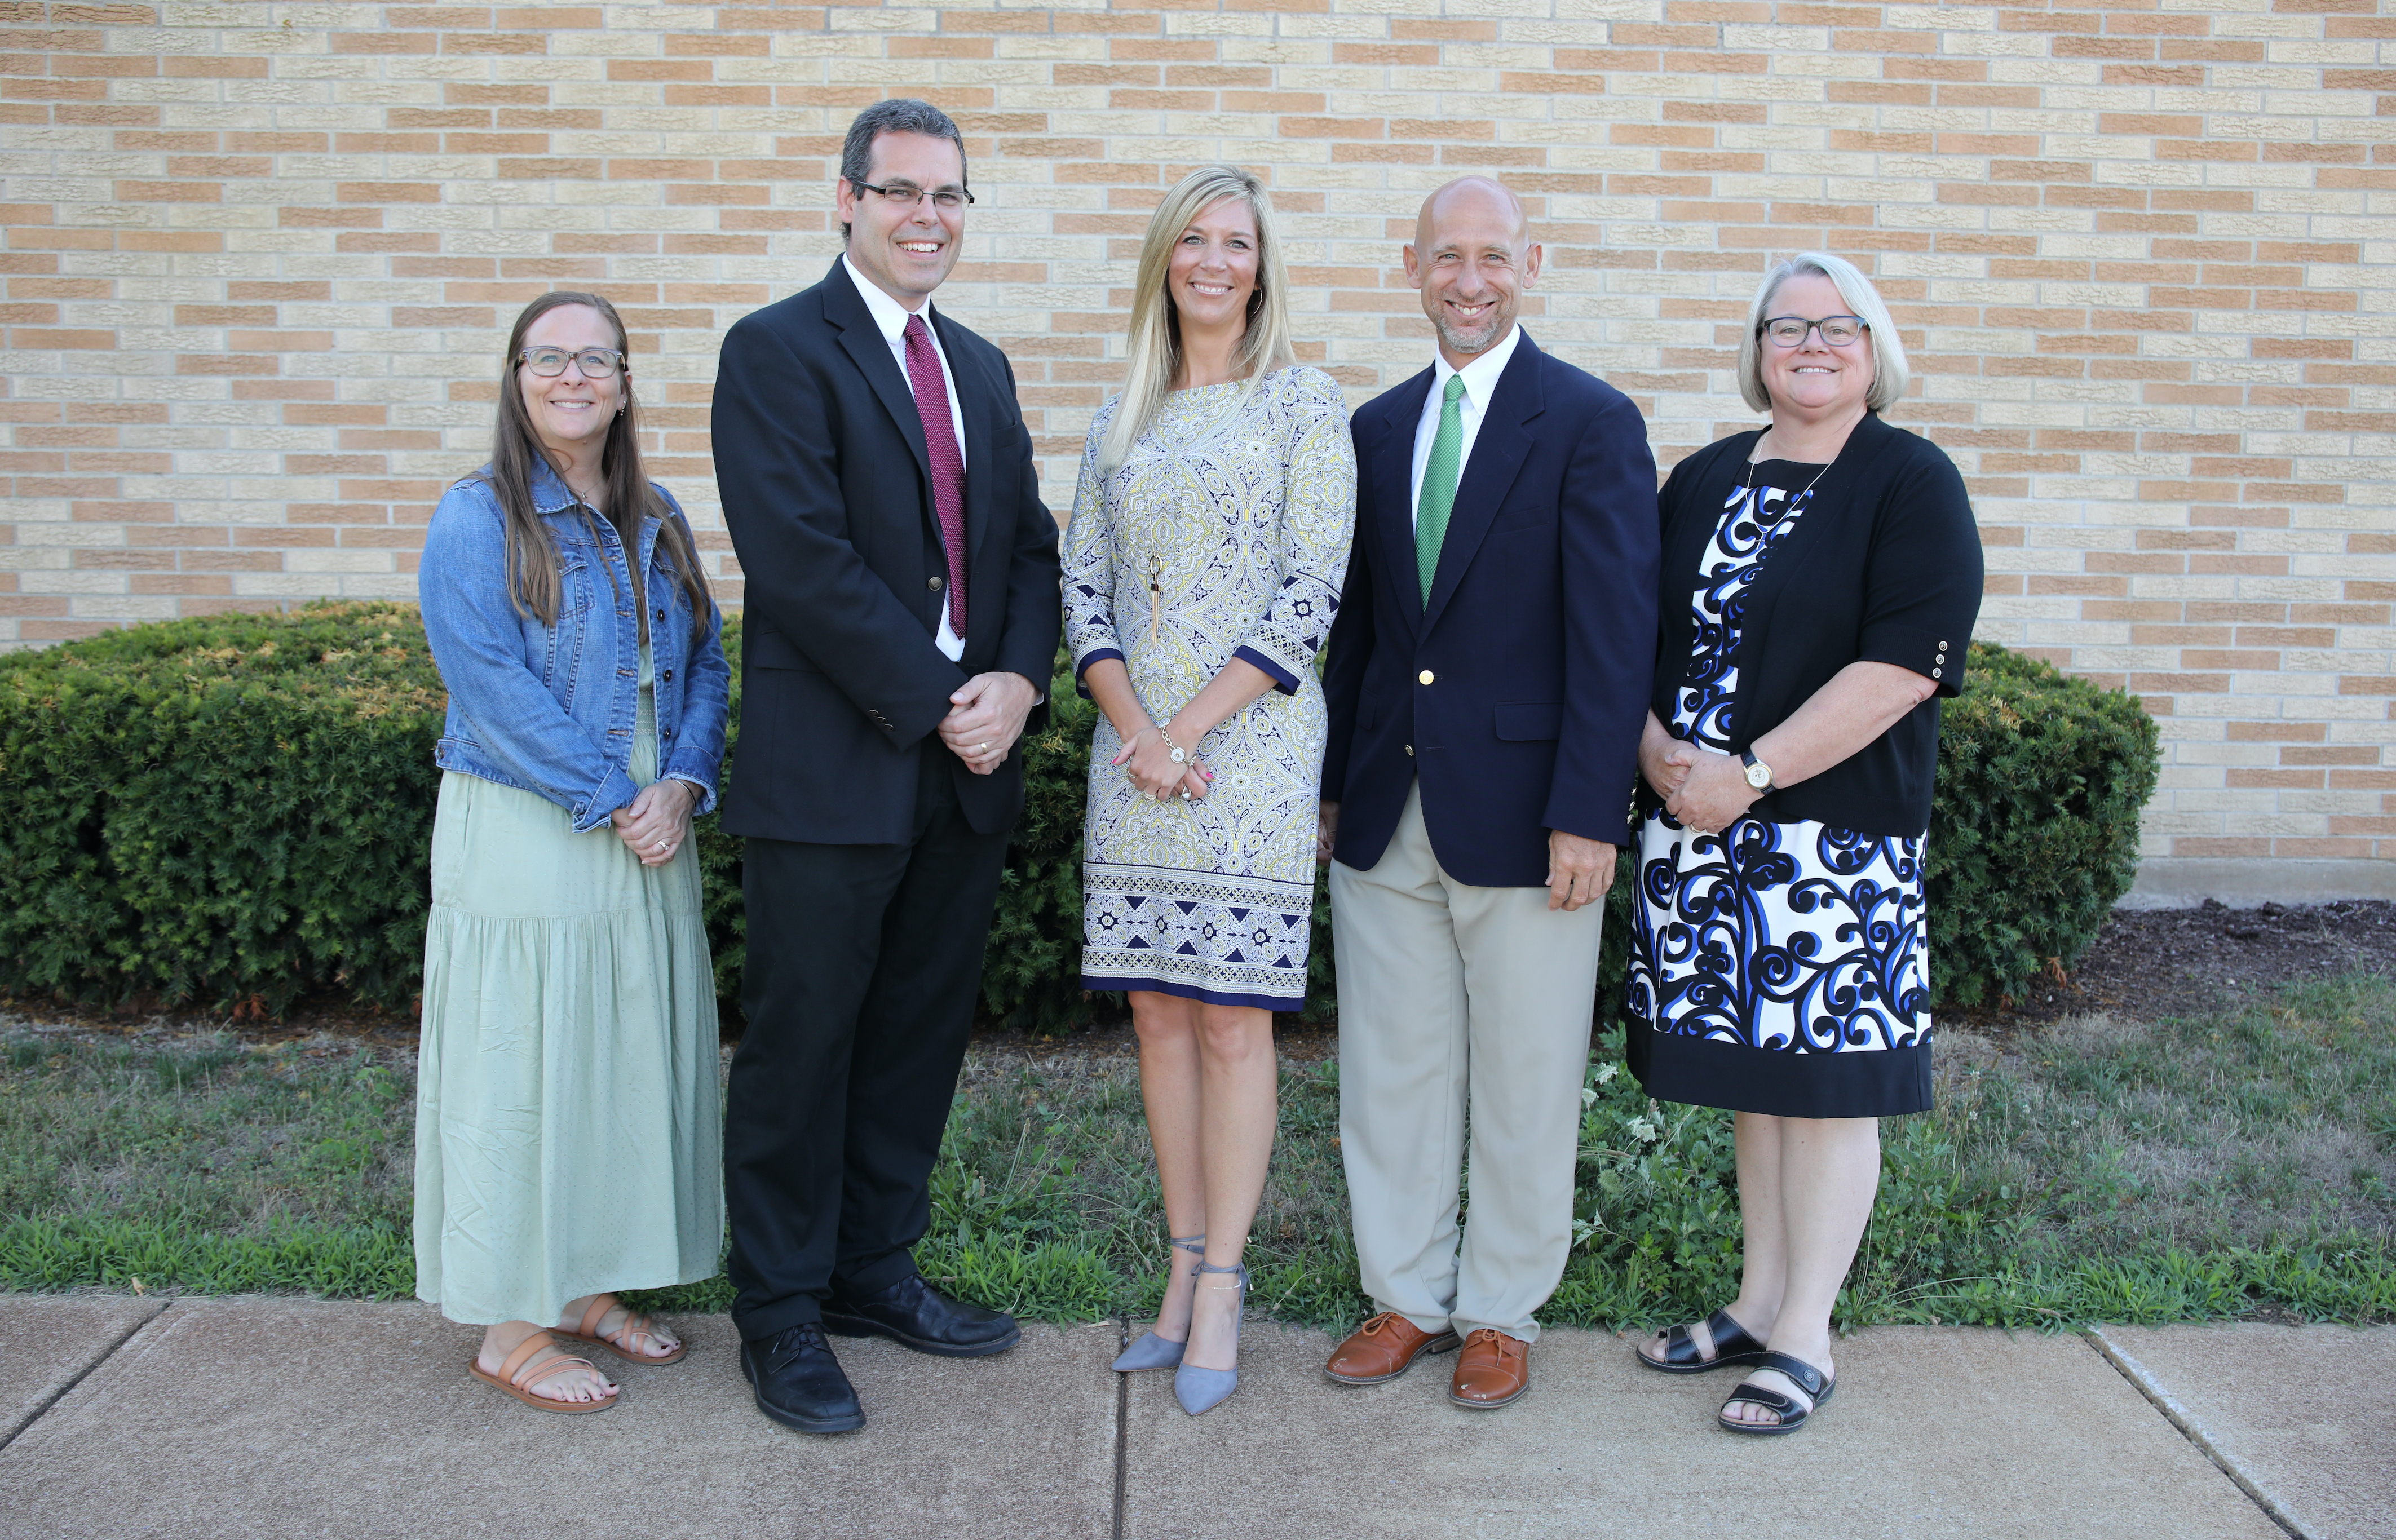 Five school board members pose for a picture